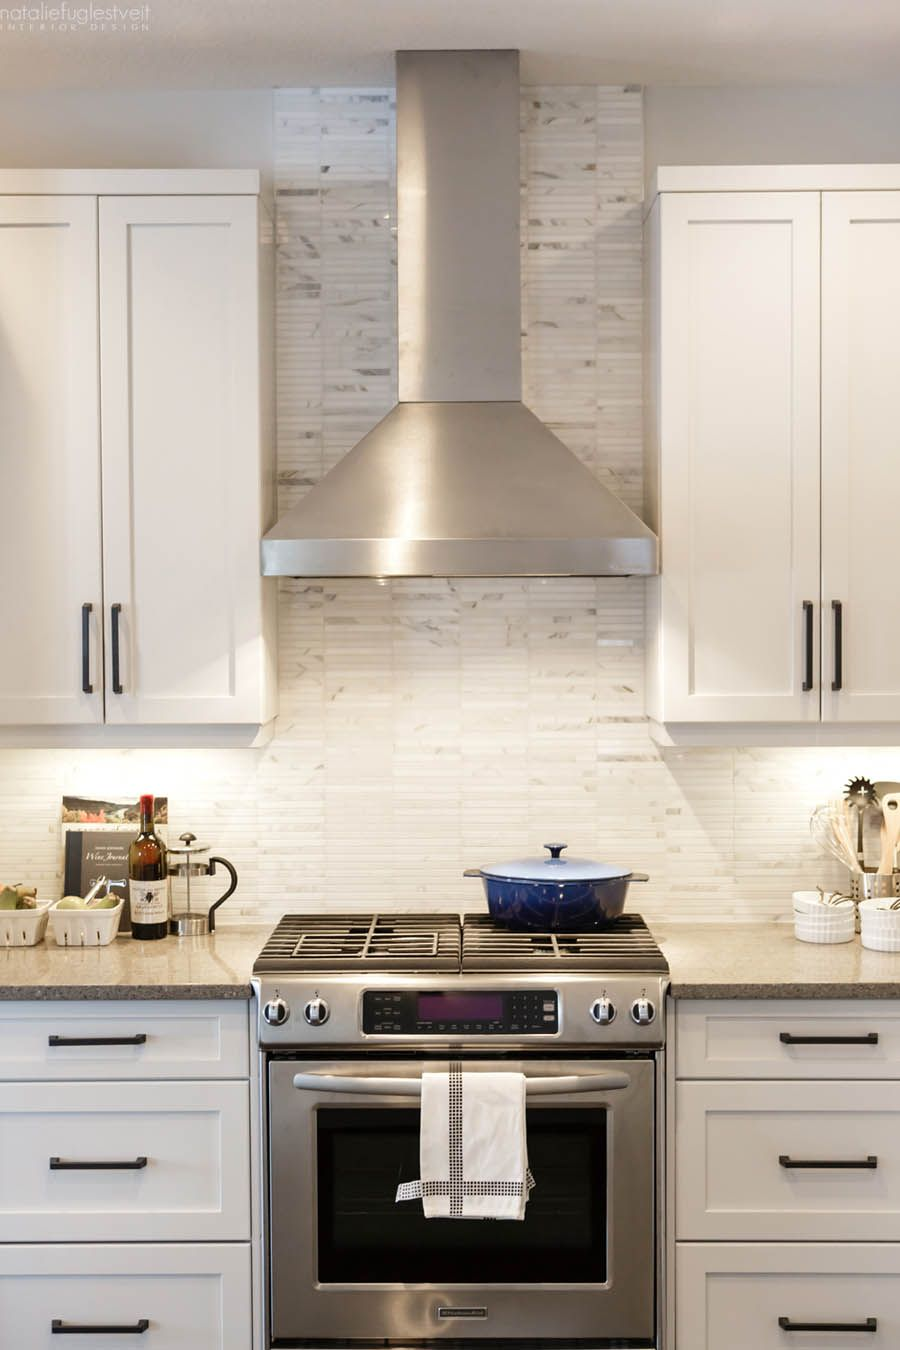 White Kitchens By Design a rustic & modern white kitchencalgary interior designer